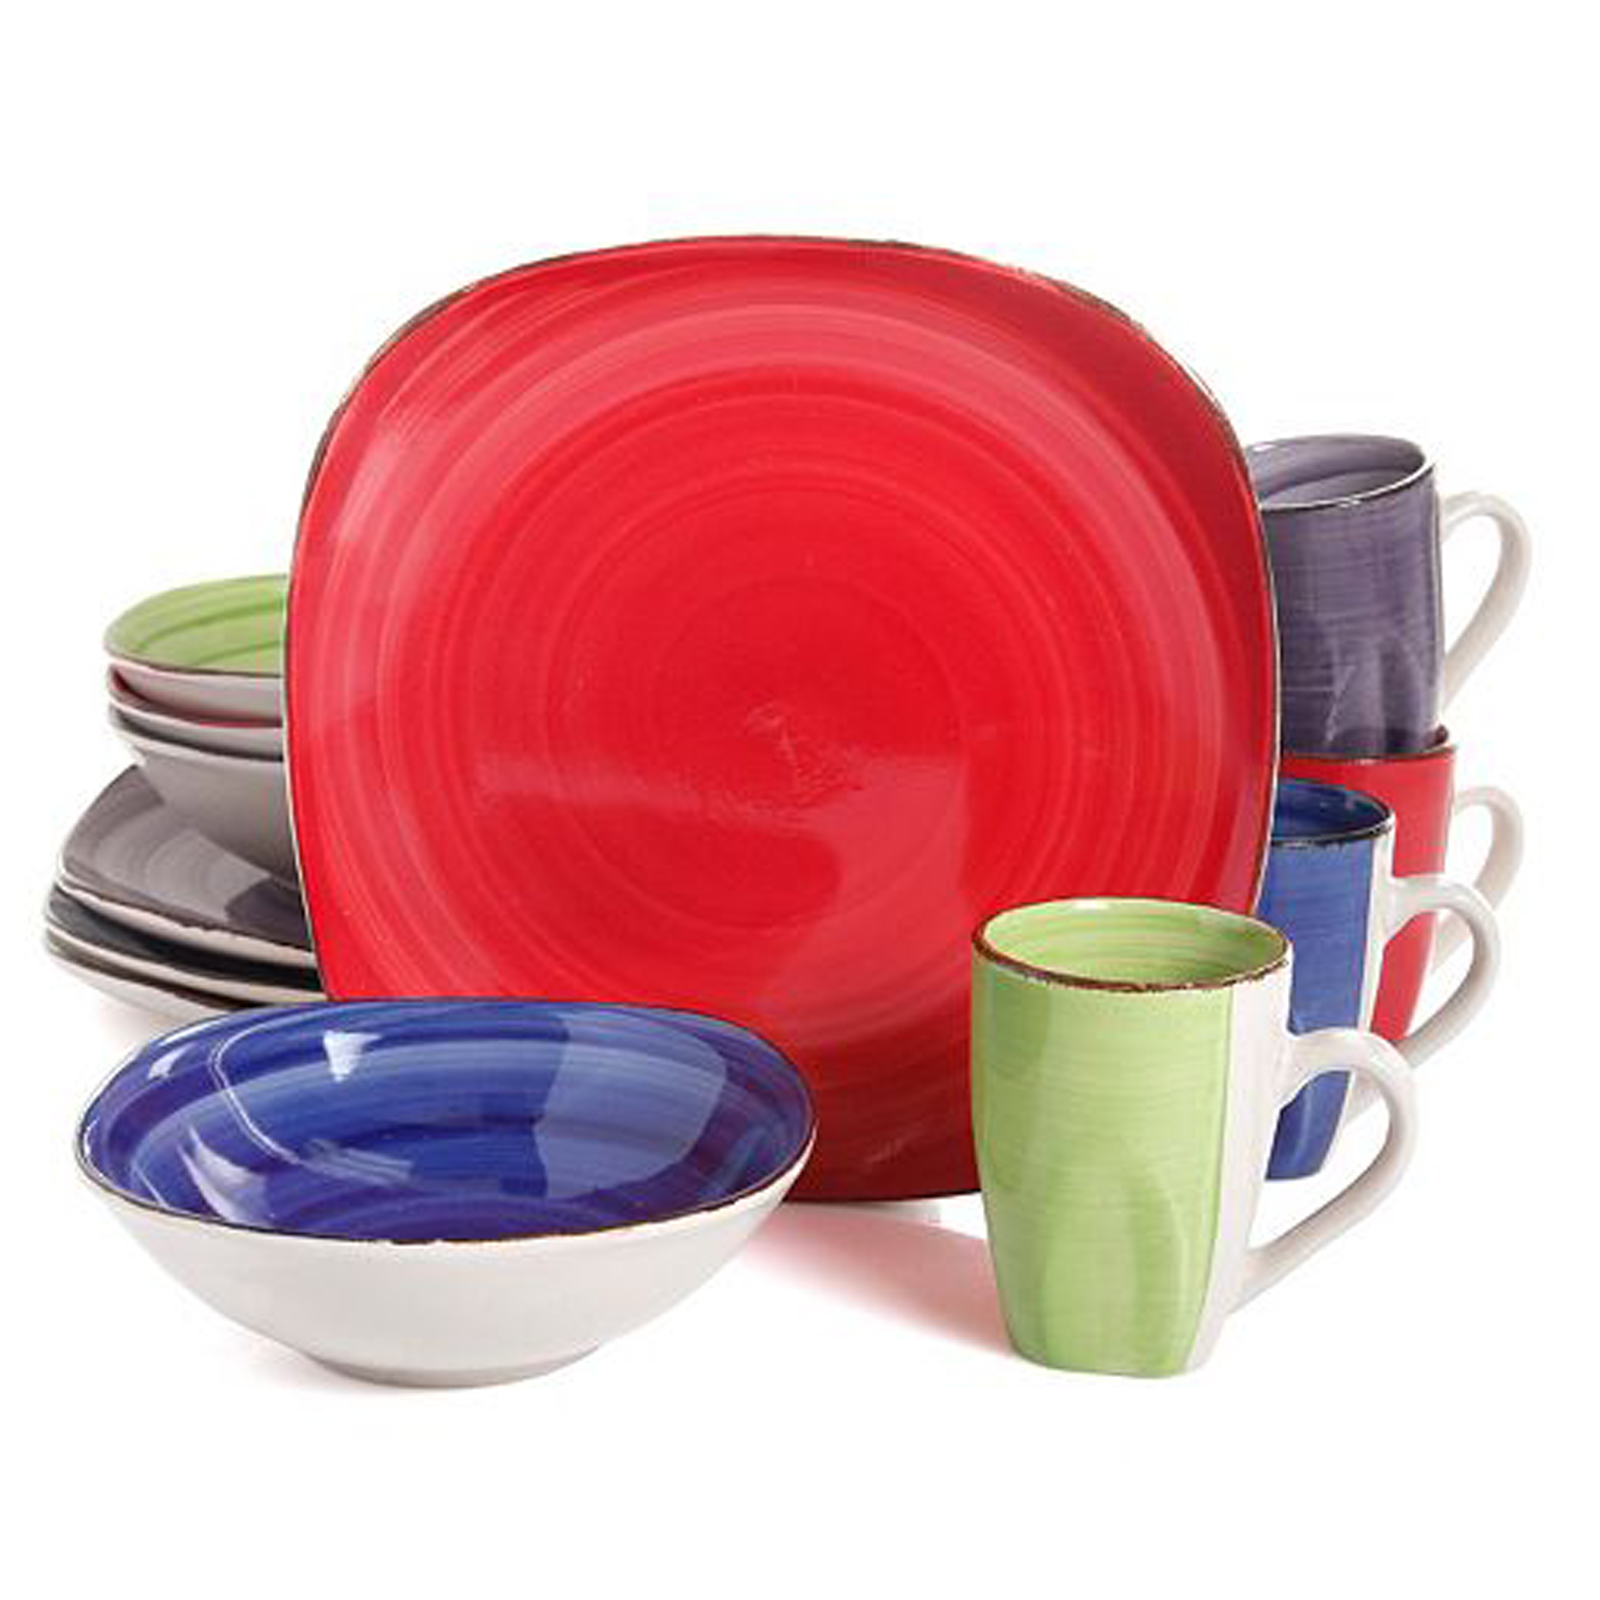 Gibson Color Vibes Stoneware12 Piece Soft Square Dinnerware Set in 4 Assorted Colors